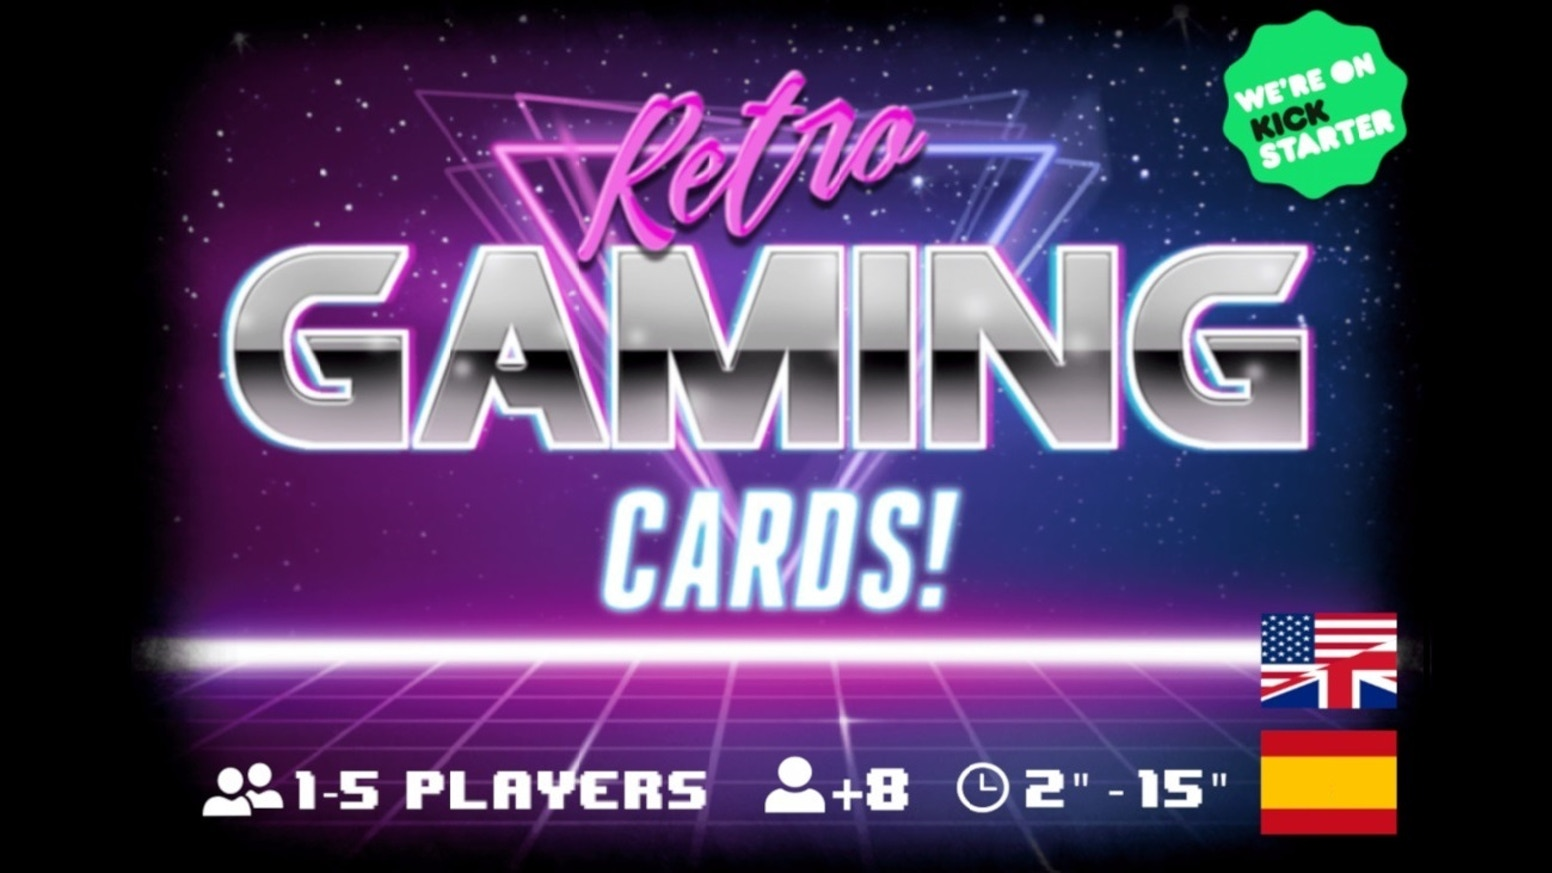 Retro Gaming Cards! - A Game of Loading Screens by Gabriel